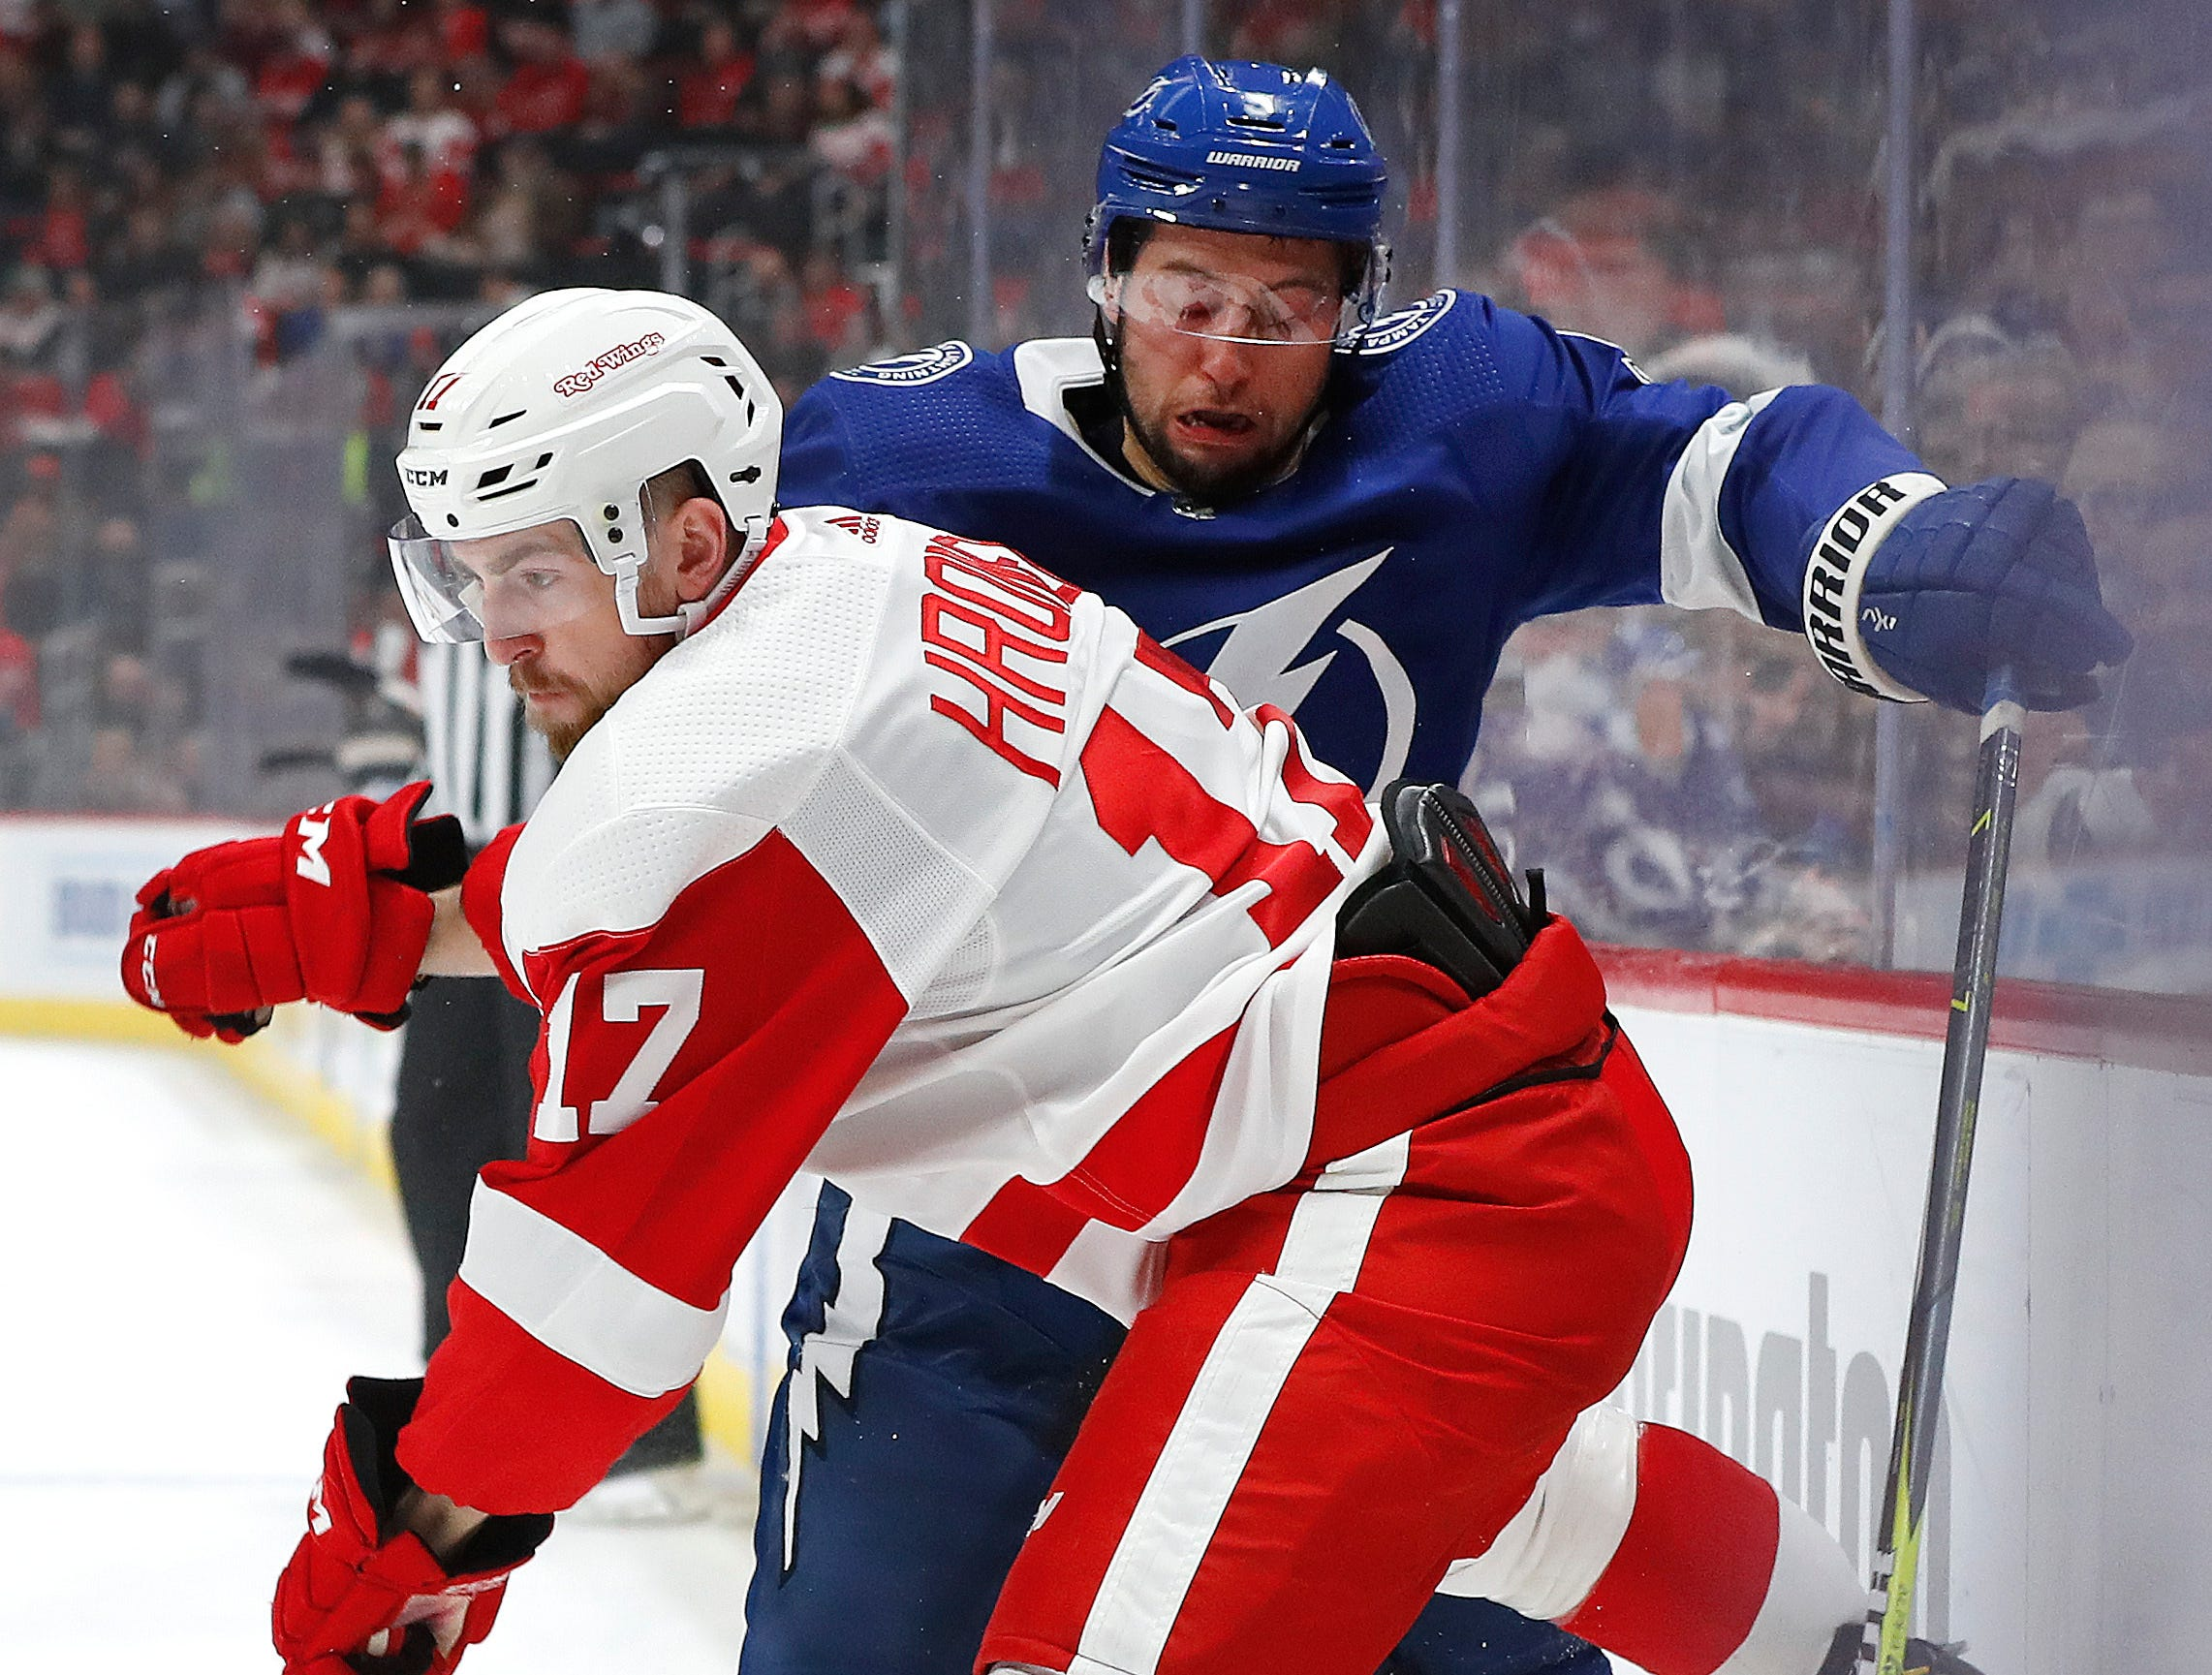 Detroit Red Wings defenseman Filip Hronek (17) checks Tampa Bay Lightning center Tyler Johnson (9) in the first period.